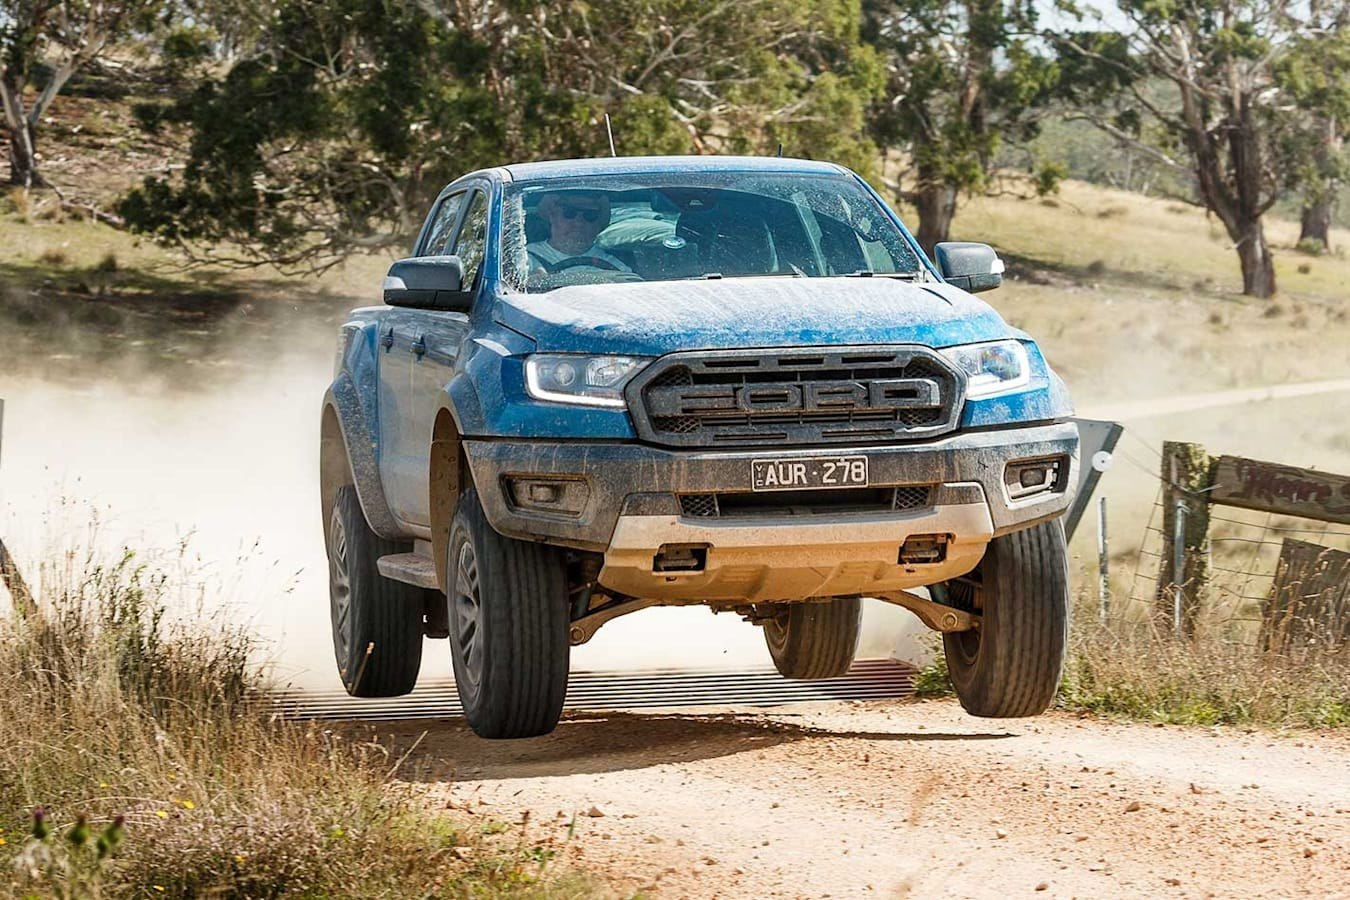 2019 Ford Ranger Raptor 4 X 4 Feature Review 281 29 Jpg